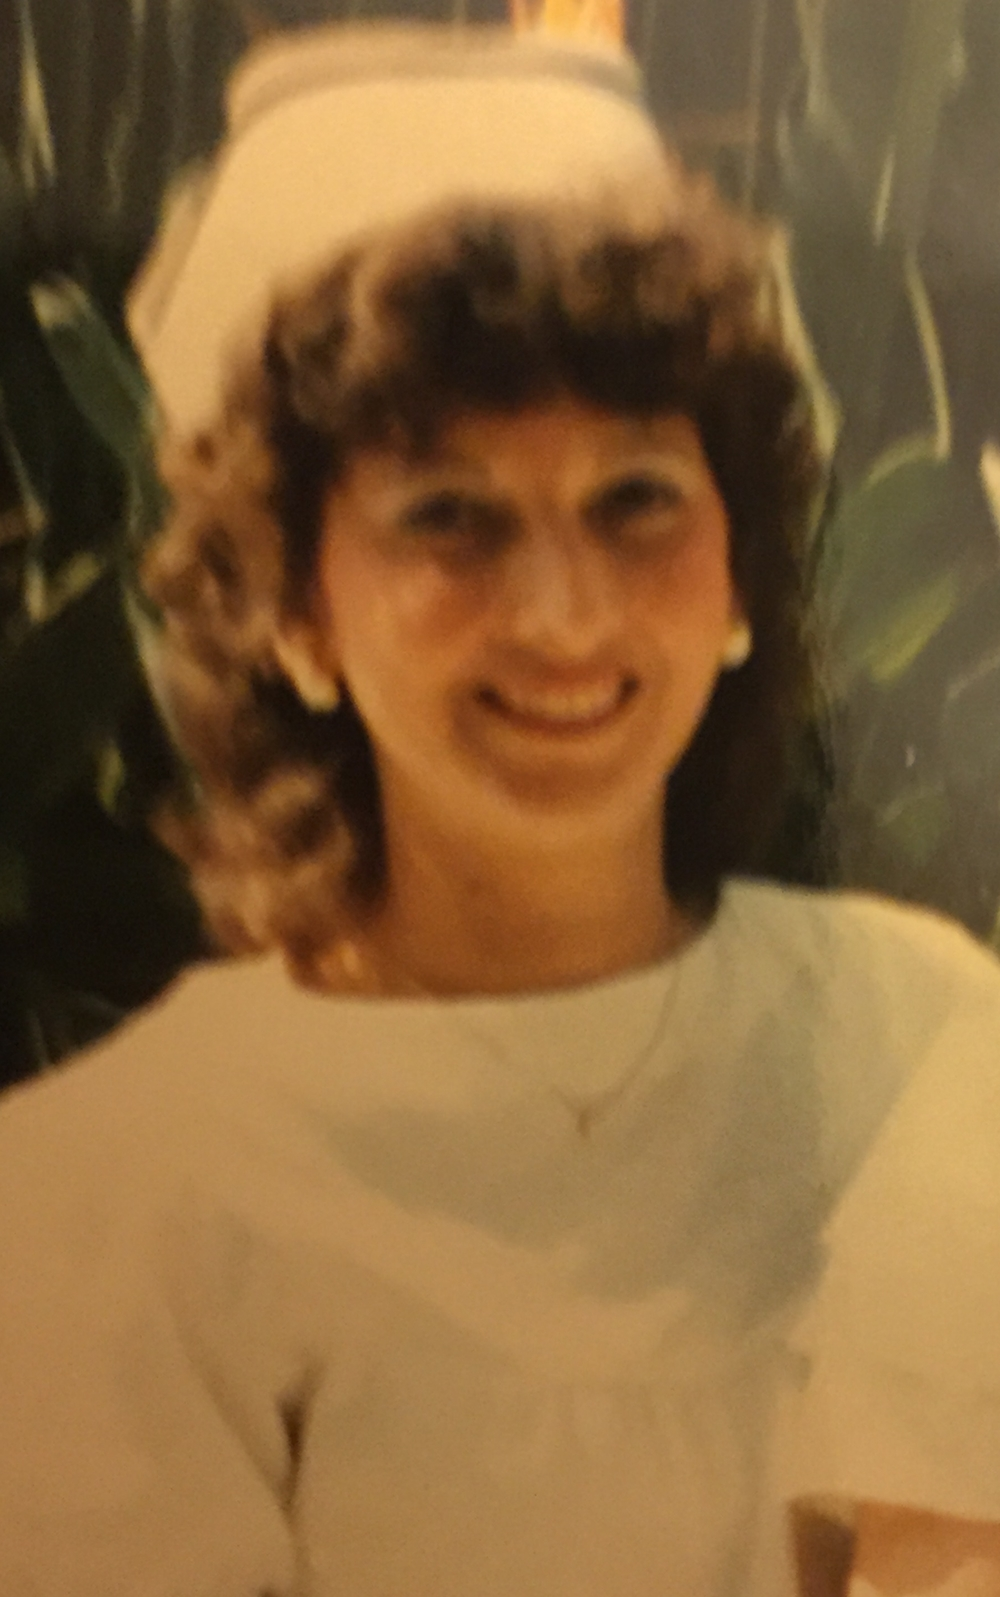 Valerie Melvin as a nurse for cape coral hospital circa 1986